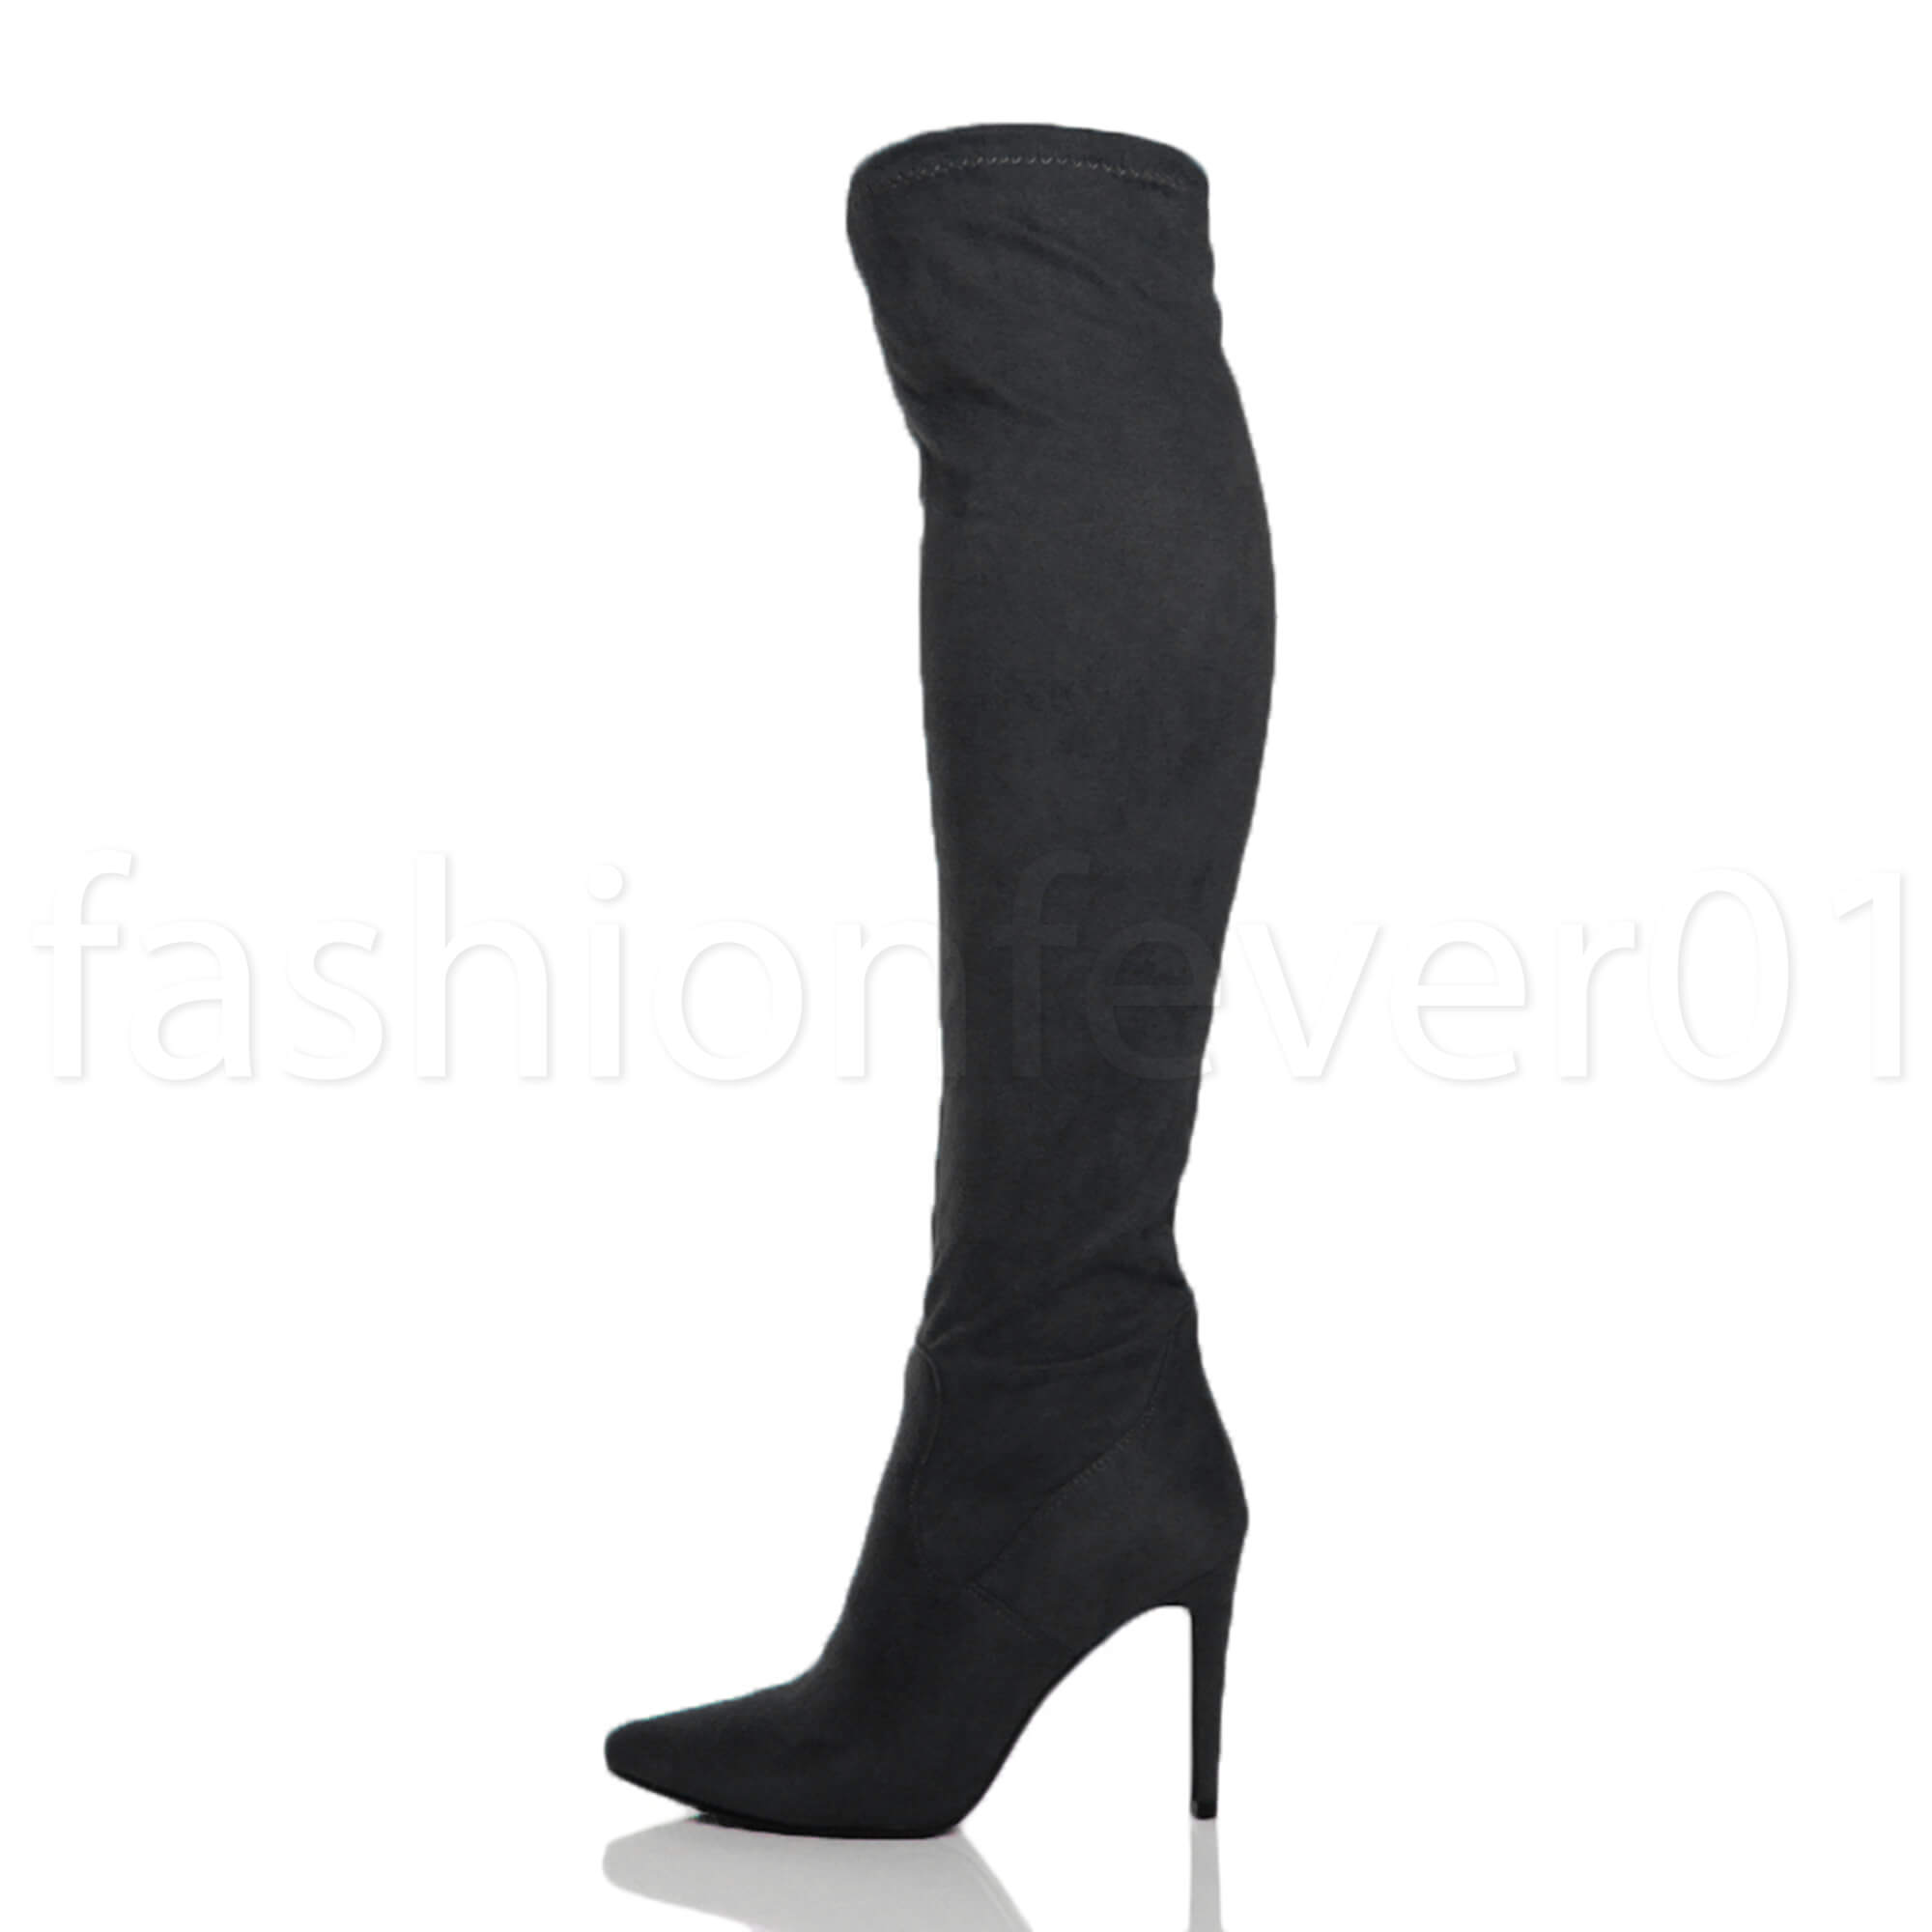 ad929ac66e1 Womens Ladies High Heel Pointed Over The Knee Stretch Thigh BOOTS ...